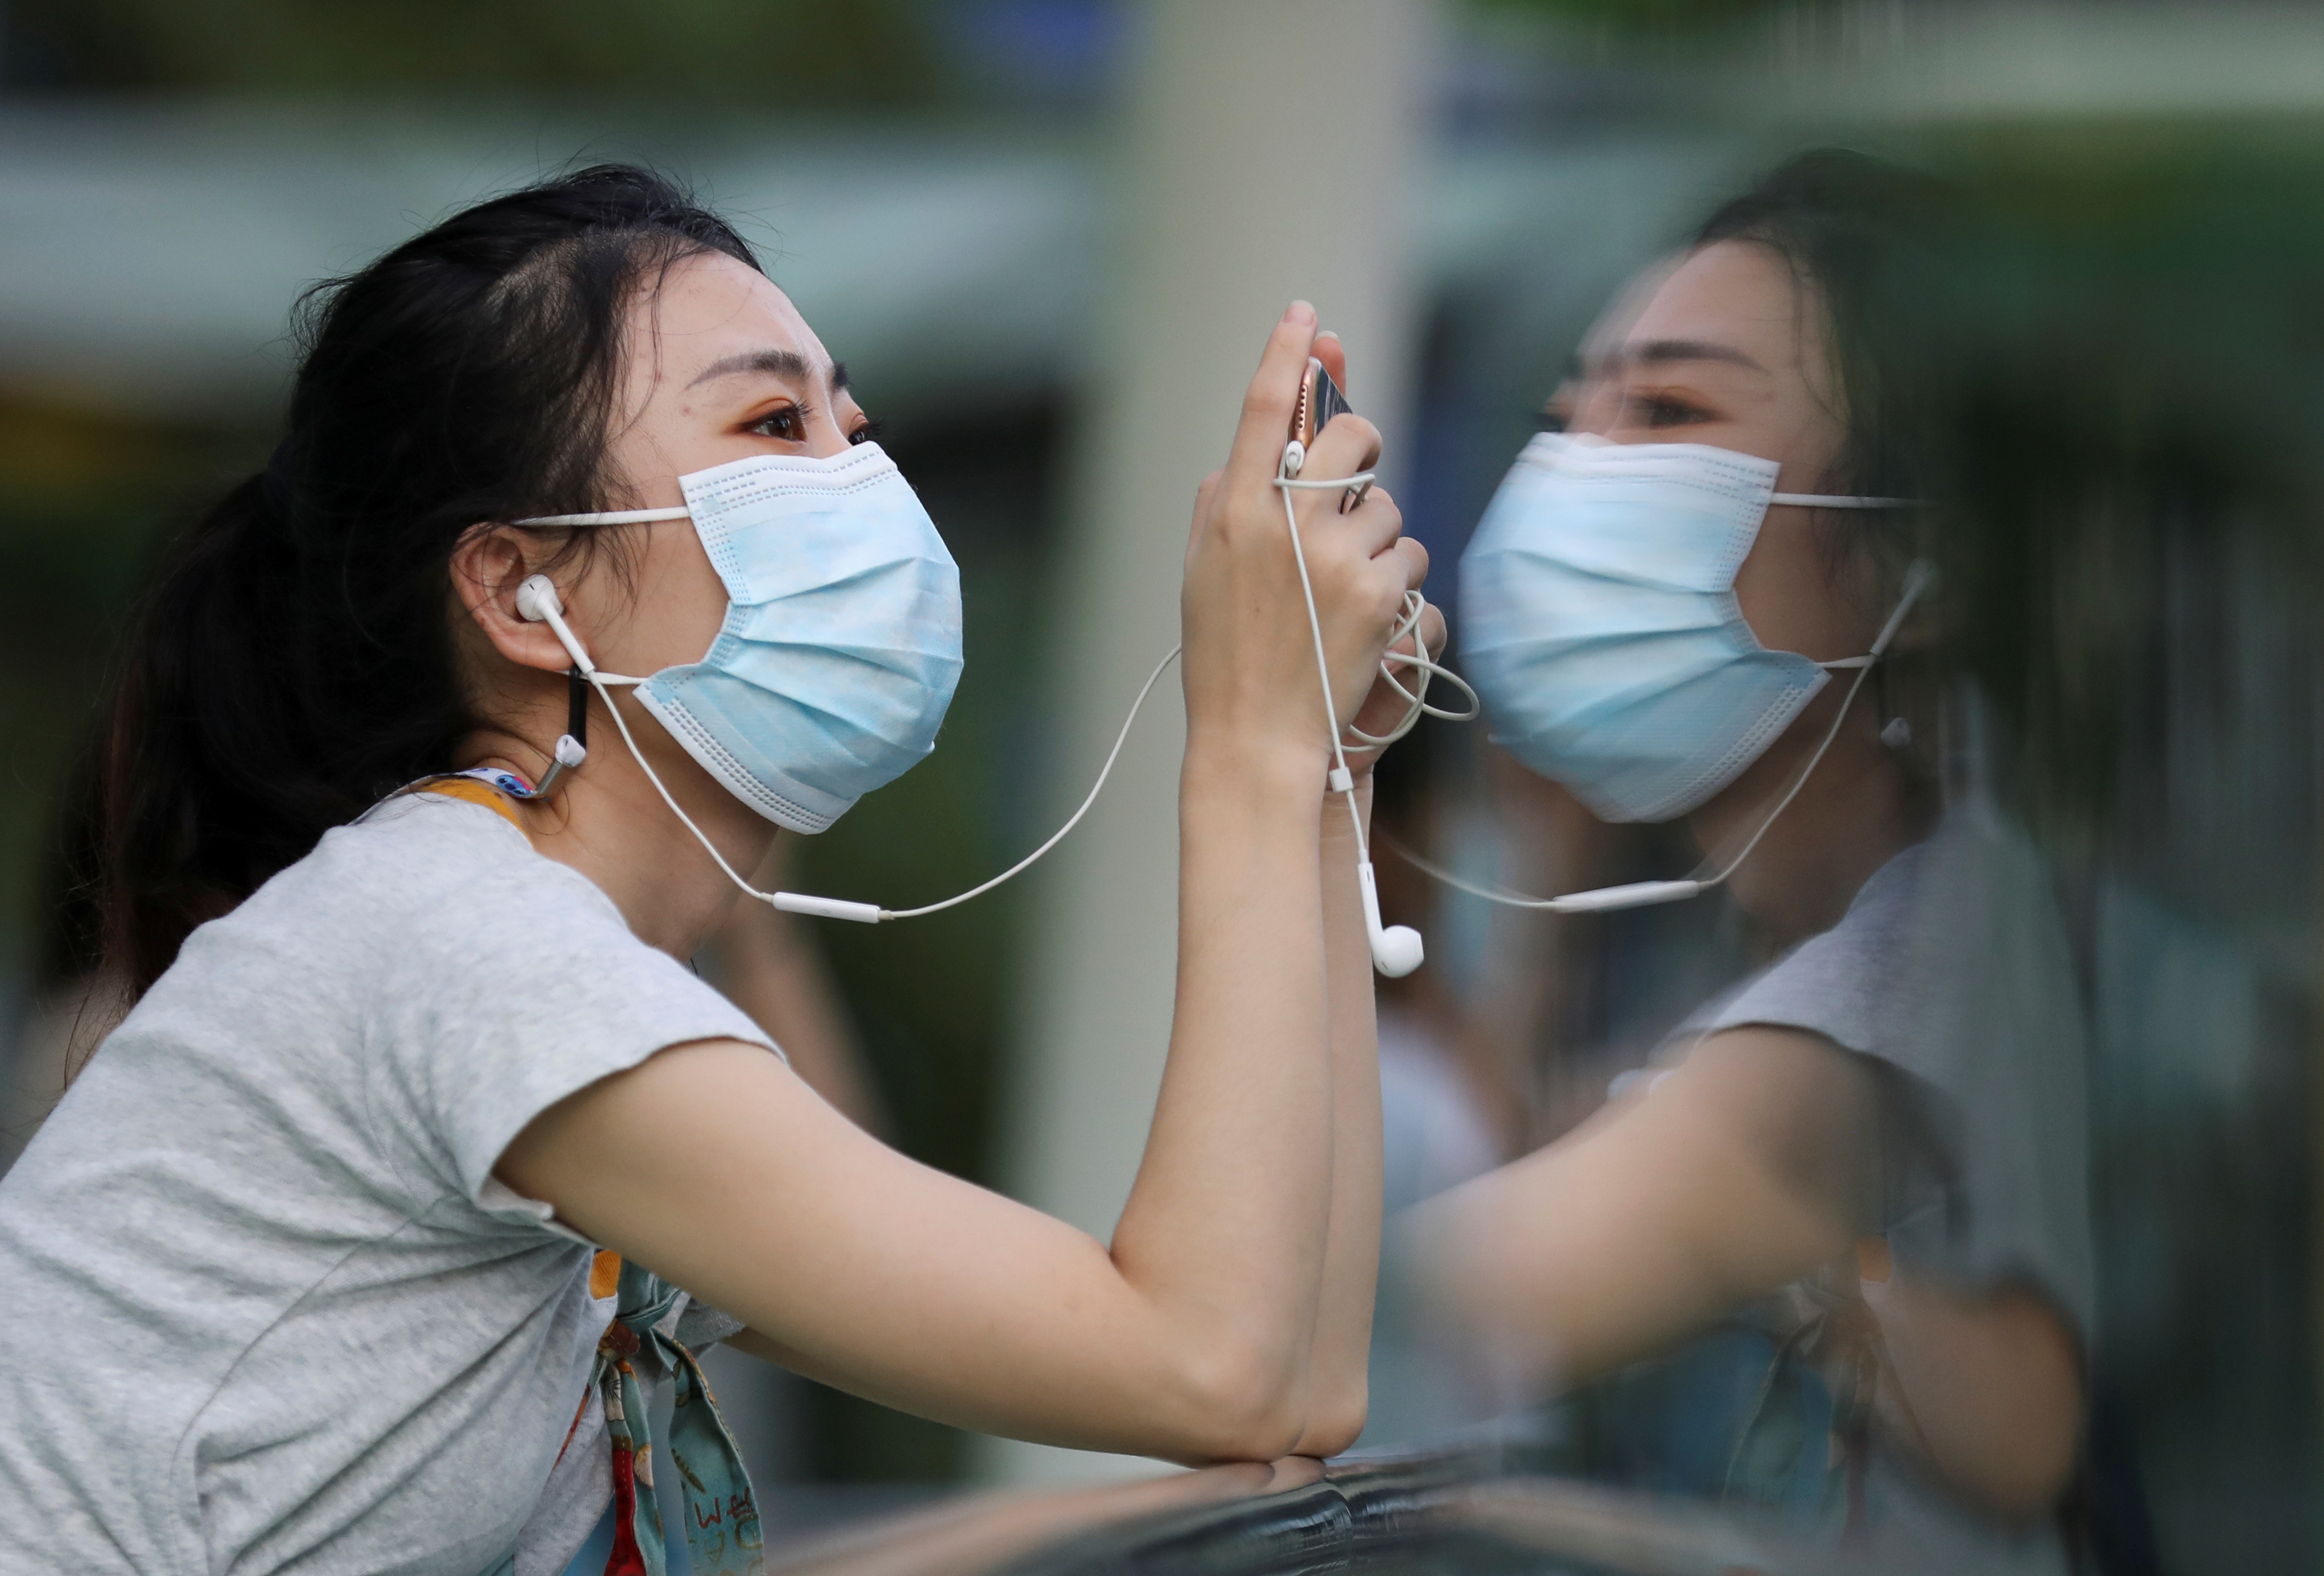 A woman wears a protective face mask as she looks at her mobile phone amid the outbreak of the coronavirus disease (COVID-19), in Bangkok, Thailand September 30, 2020. REUTERS/Soe Zeya Tun - RC219J9B1TR3